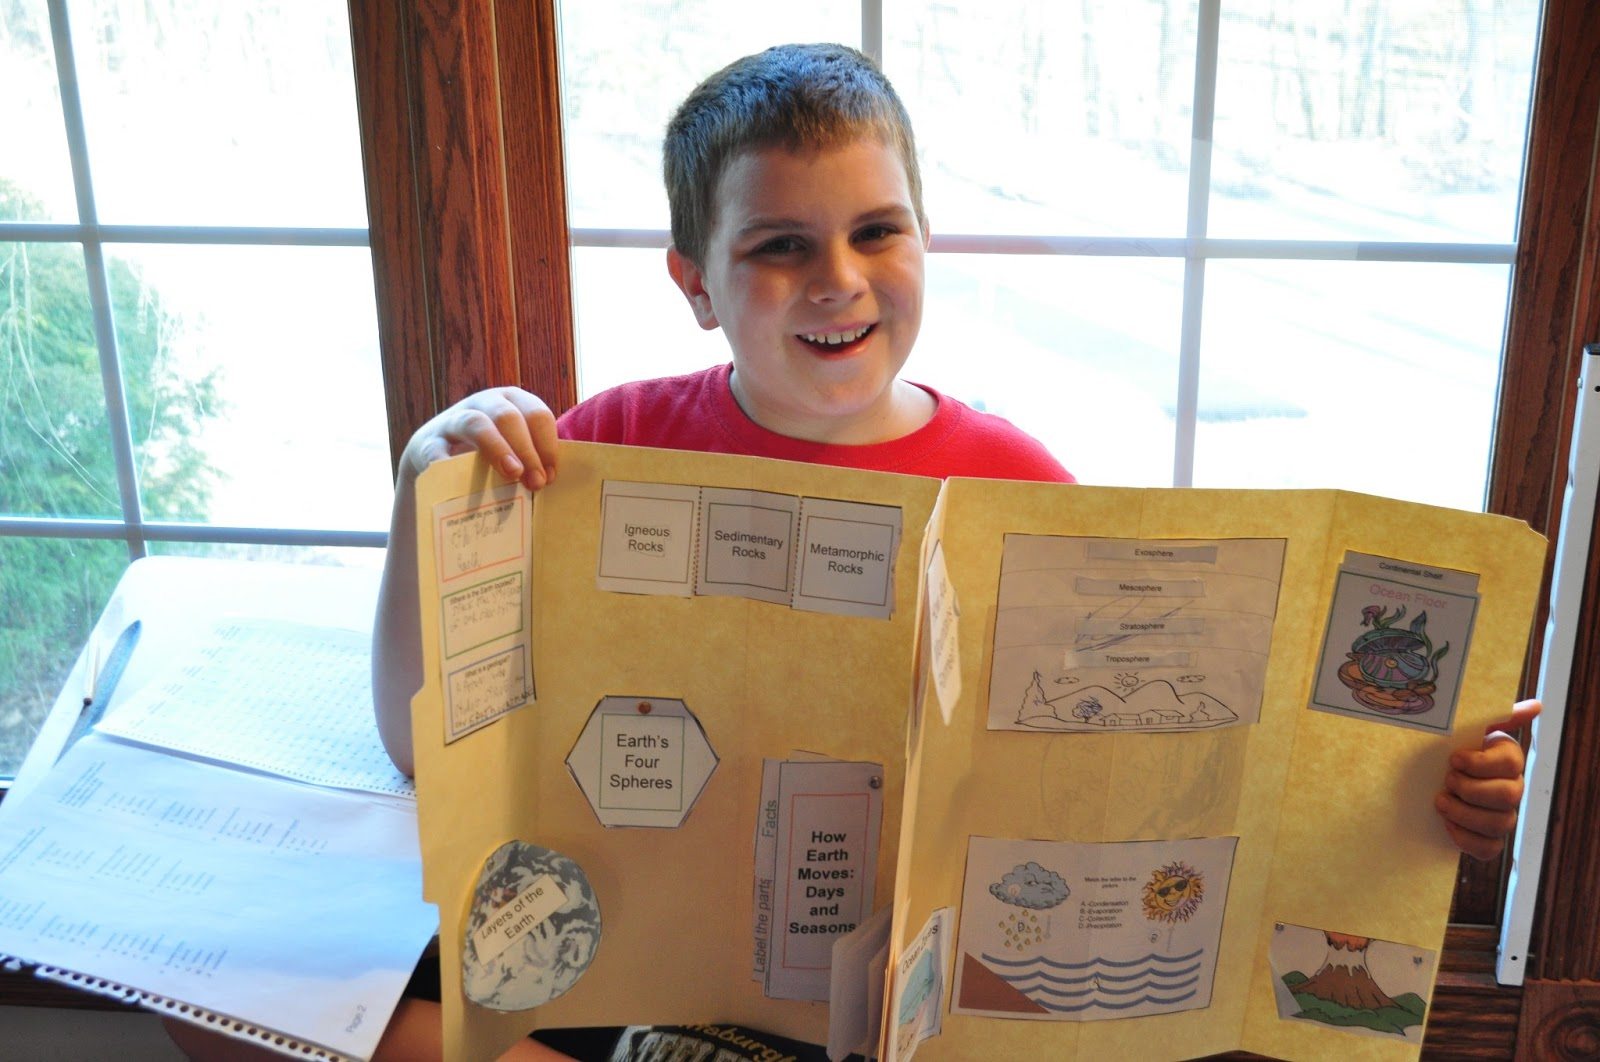 neil armstrong lapbook - photo #1